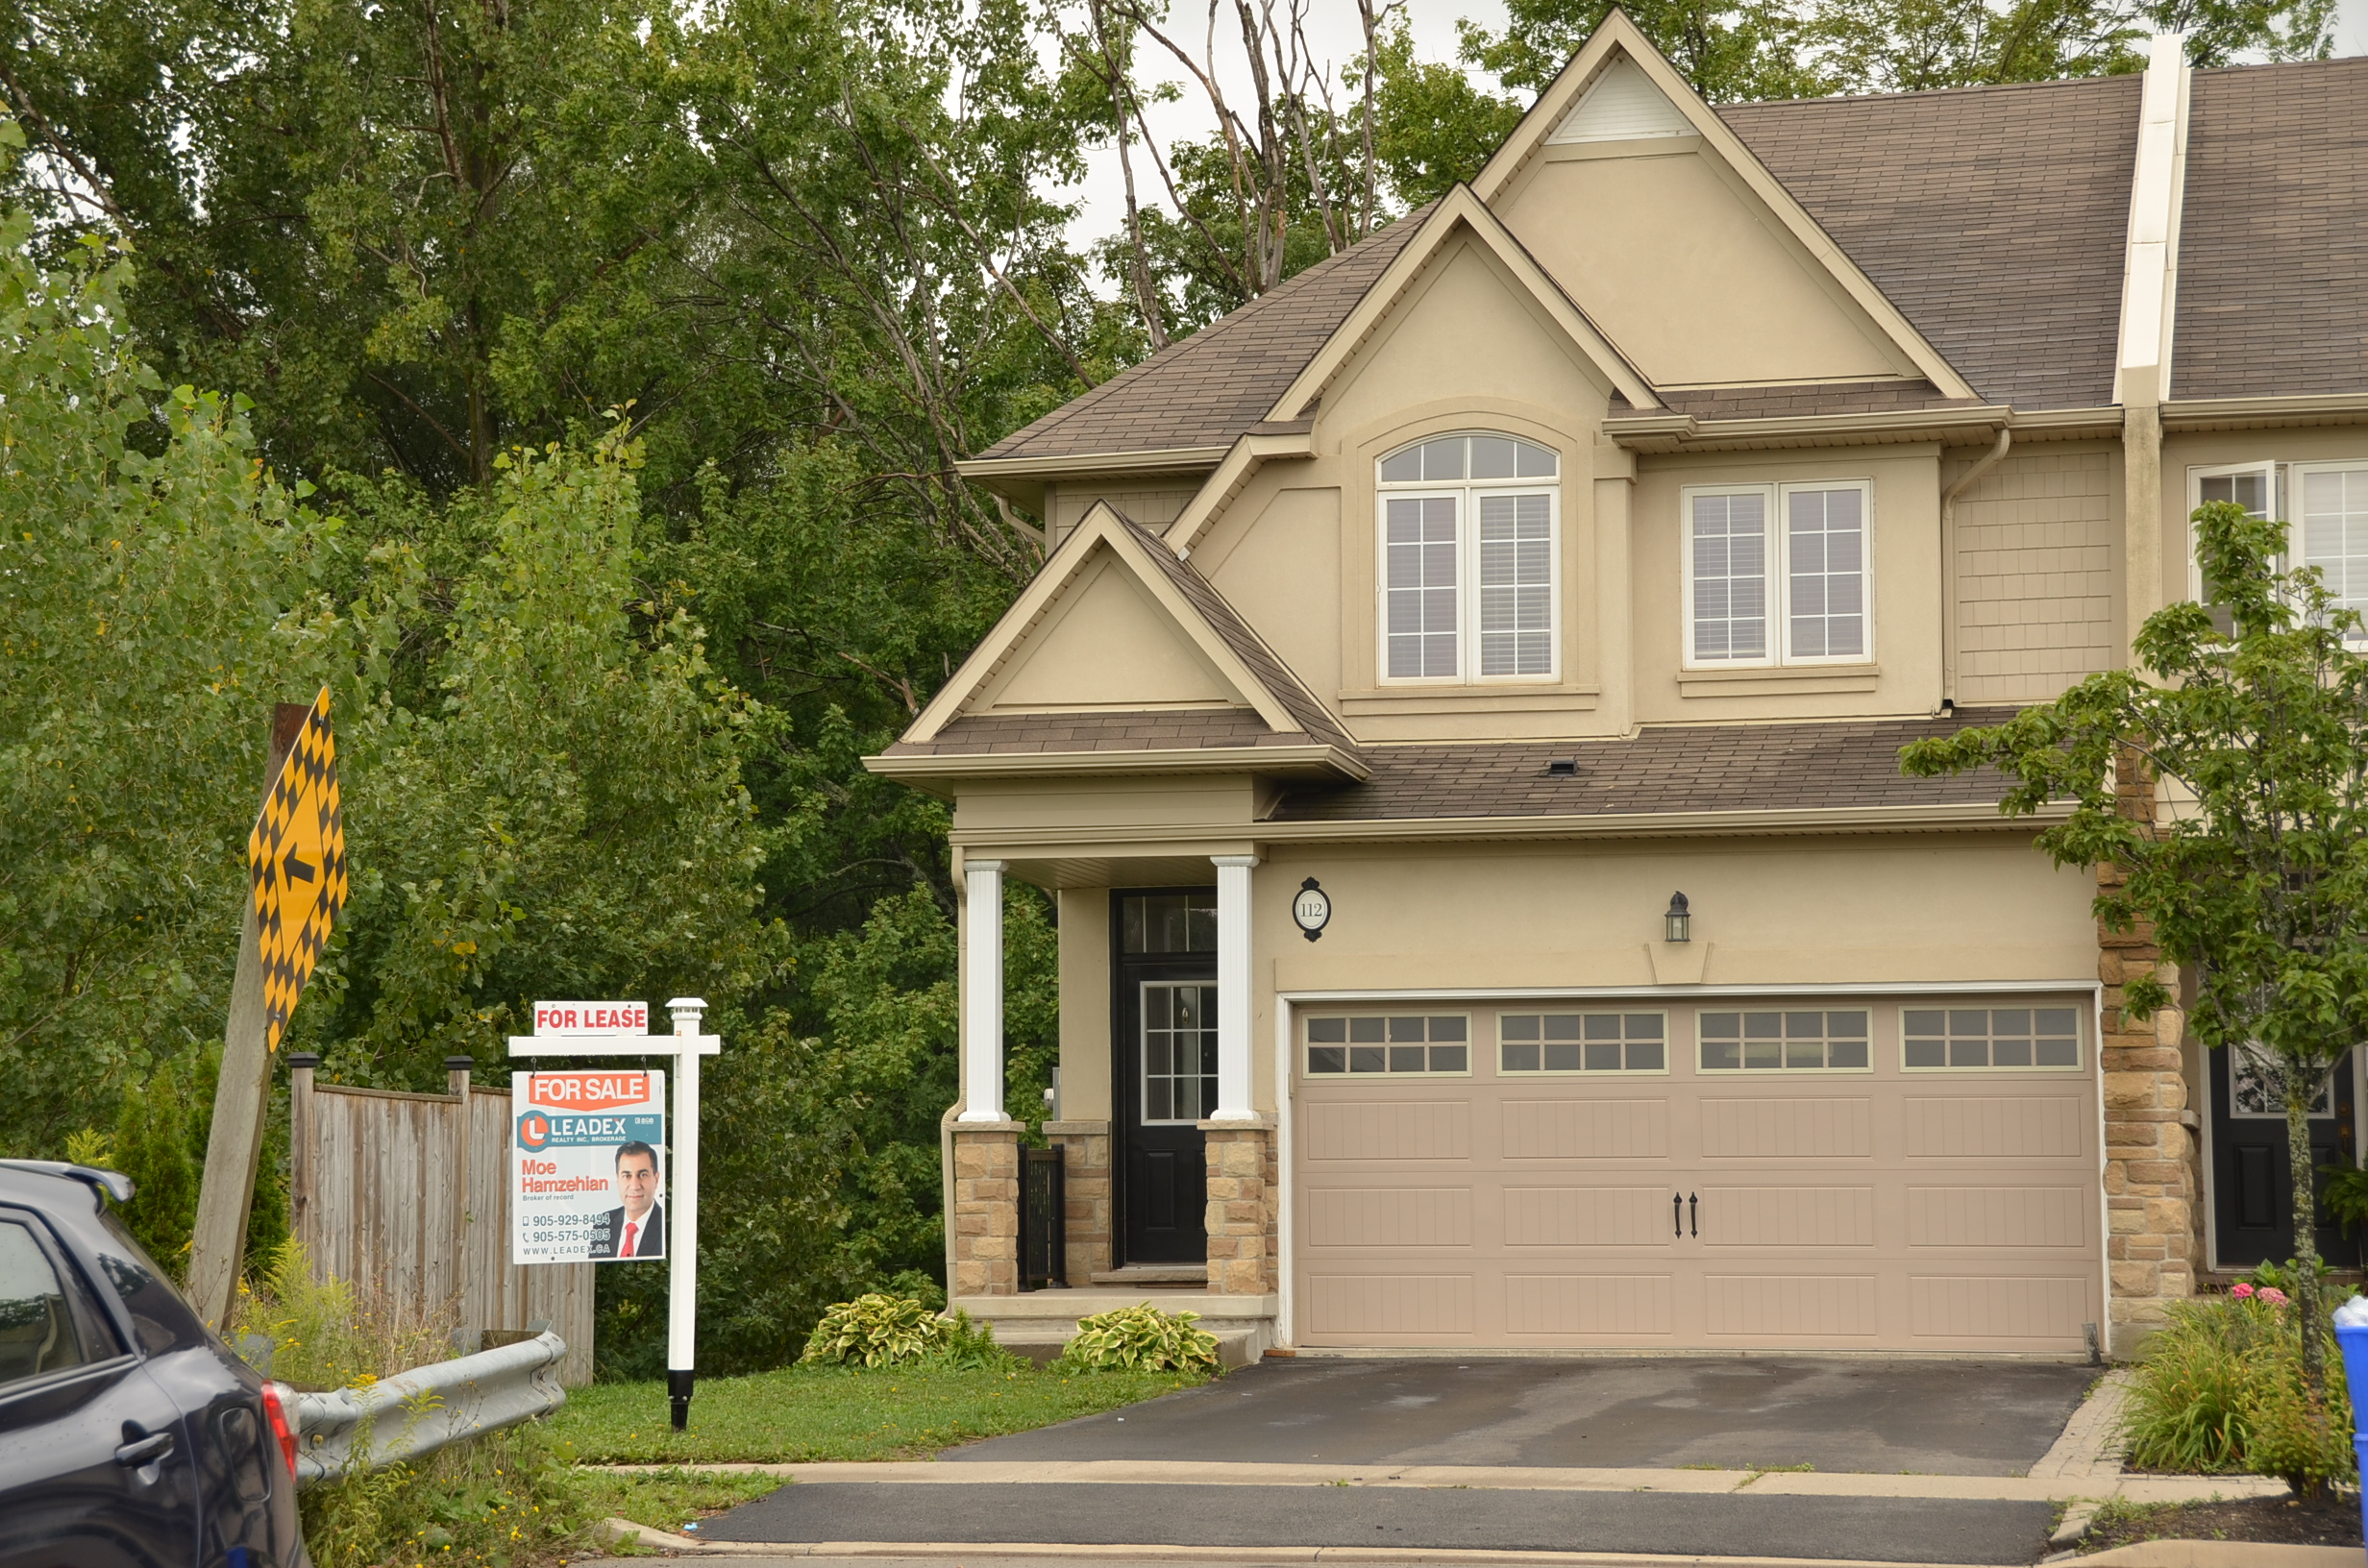 112 Maplevale Dr, Ancaster